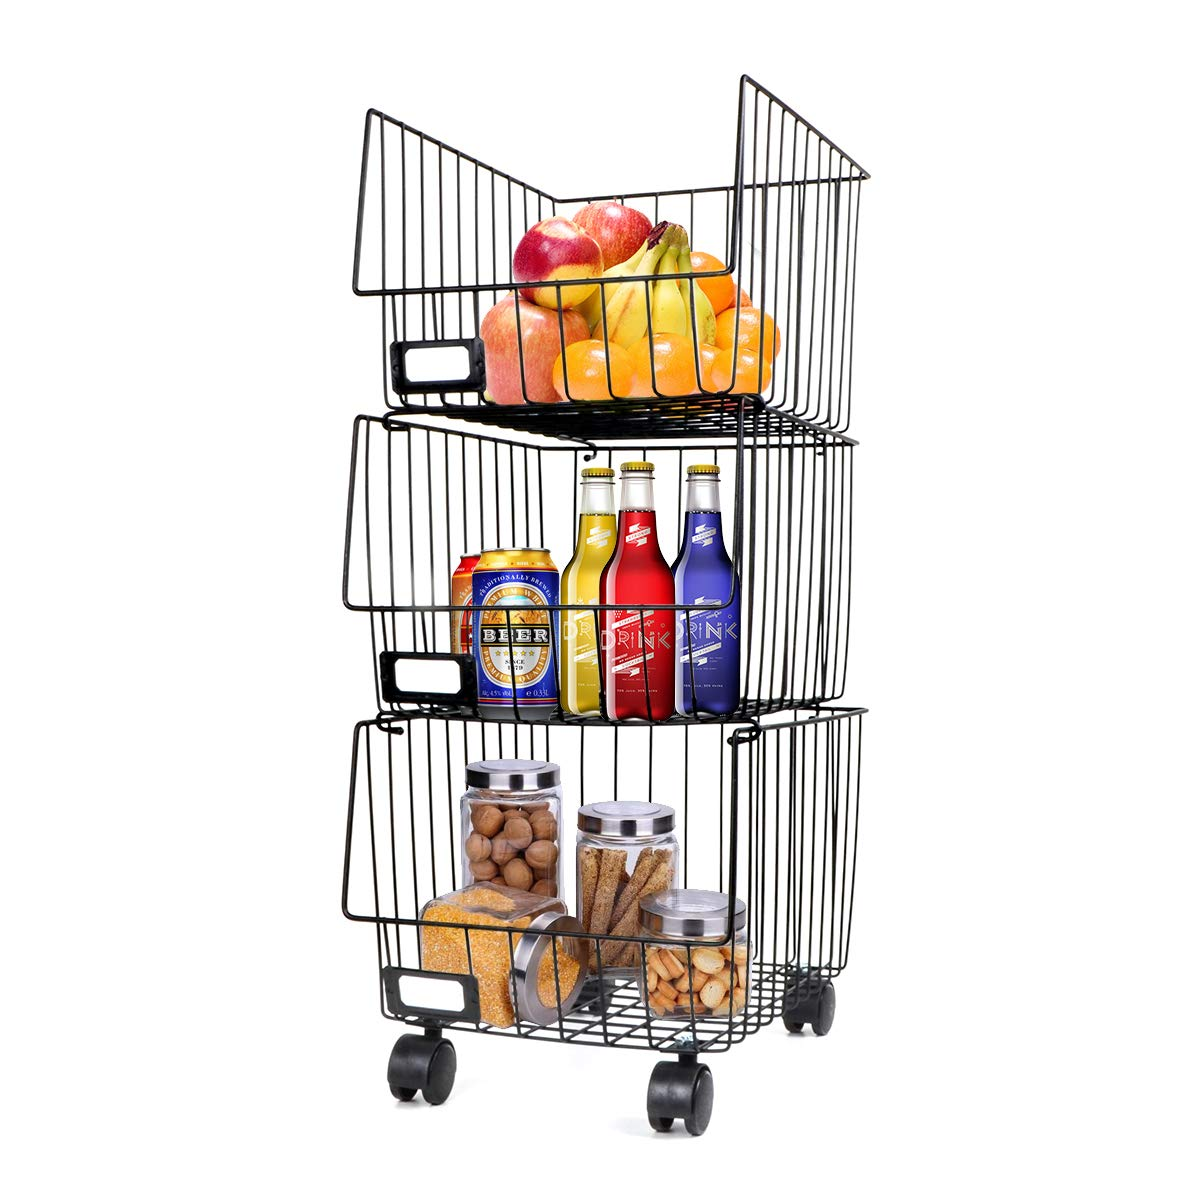 ATCD 3 Tiers Rolling Stackable Storage Organizer Bin with Casters, Portable Large Metal Wire Baskets for Kitchen, Bath, Laundry Room, Garage, Craft Room Black